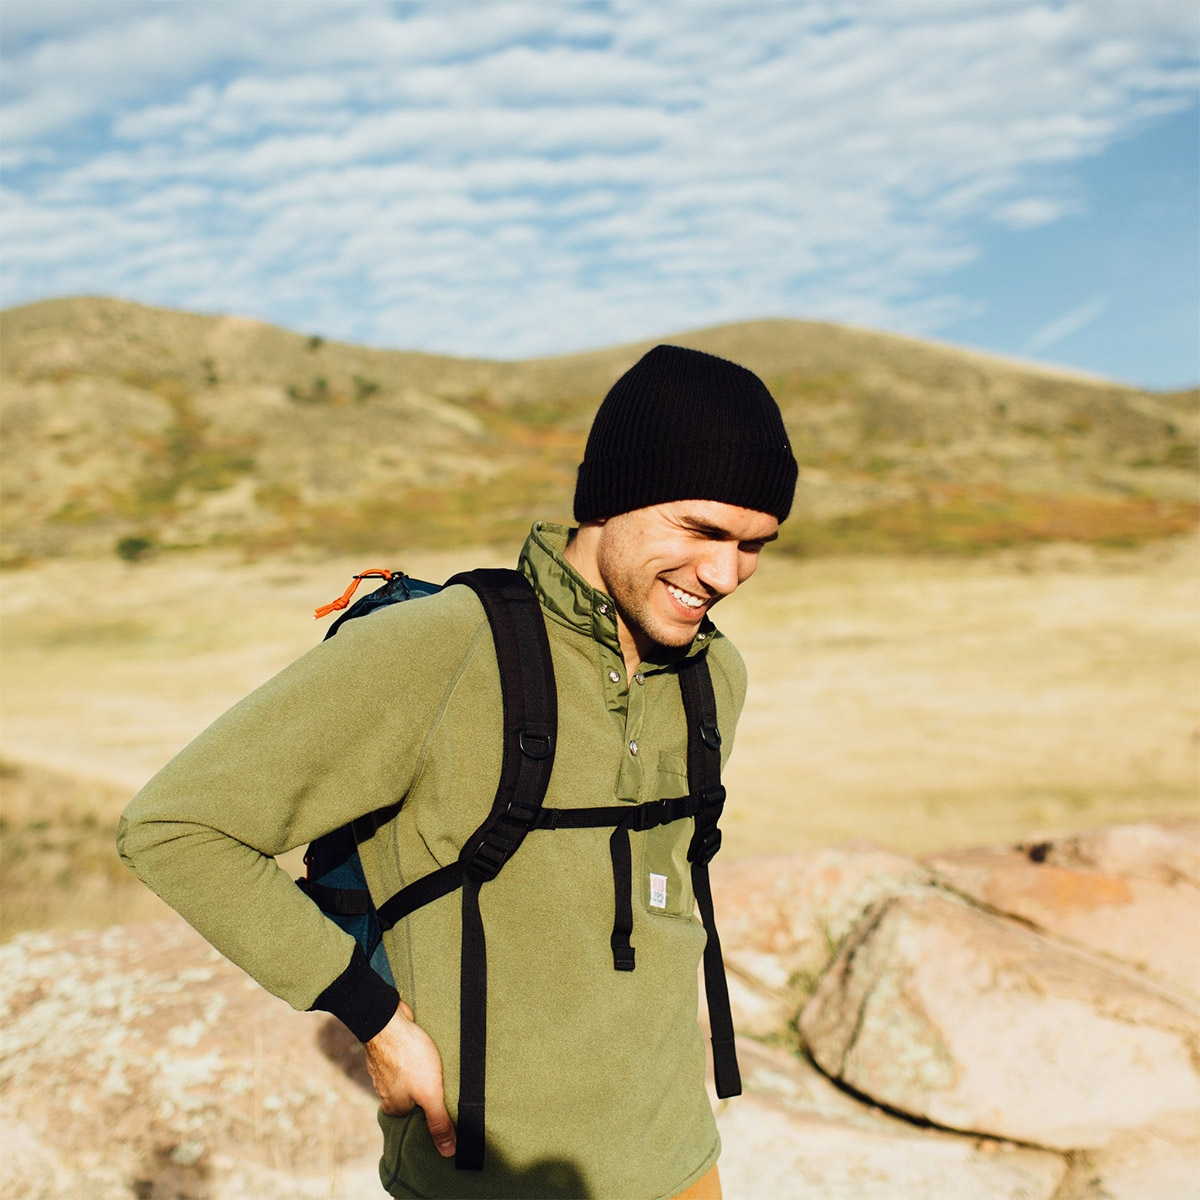 Topo Designs Watch Cap Black, wonderfully simple cap made with soft acrylic yarn to keep you warm